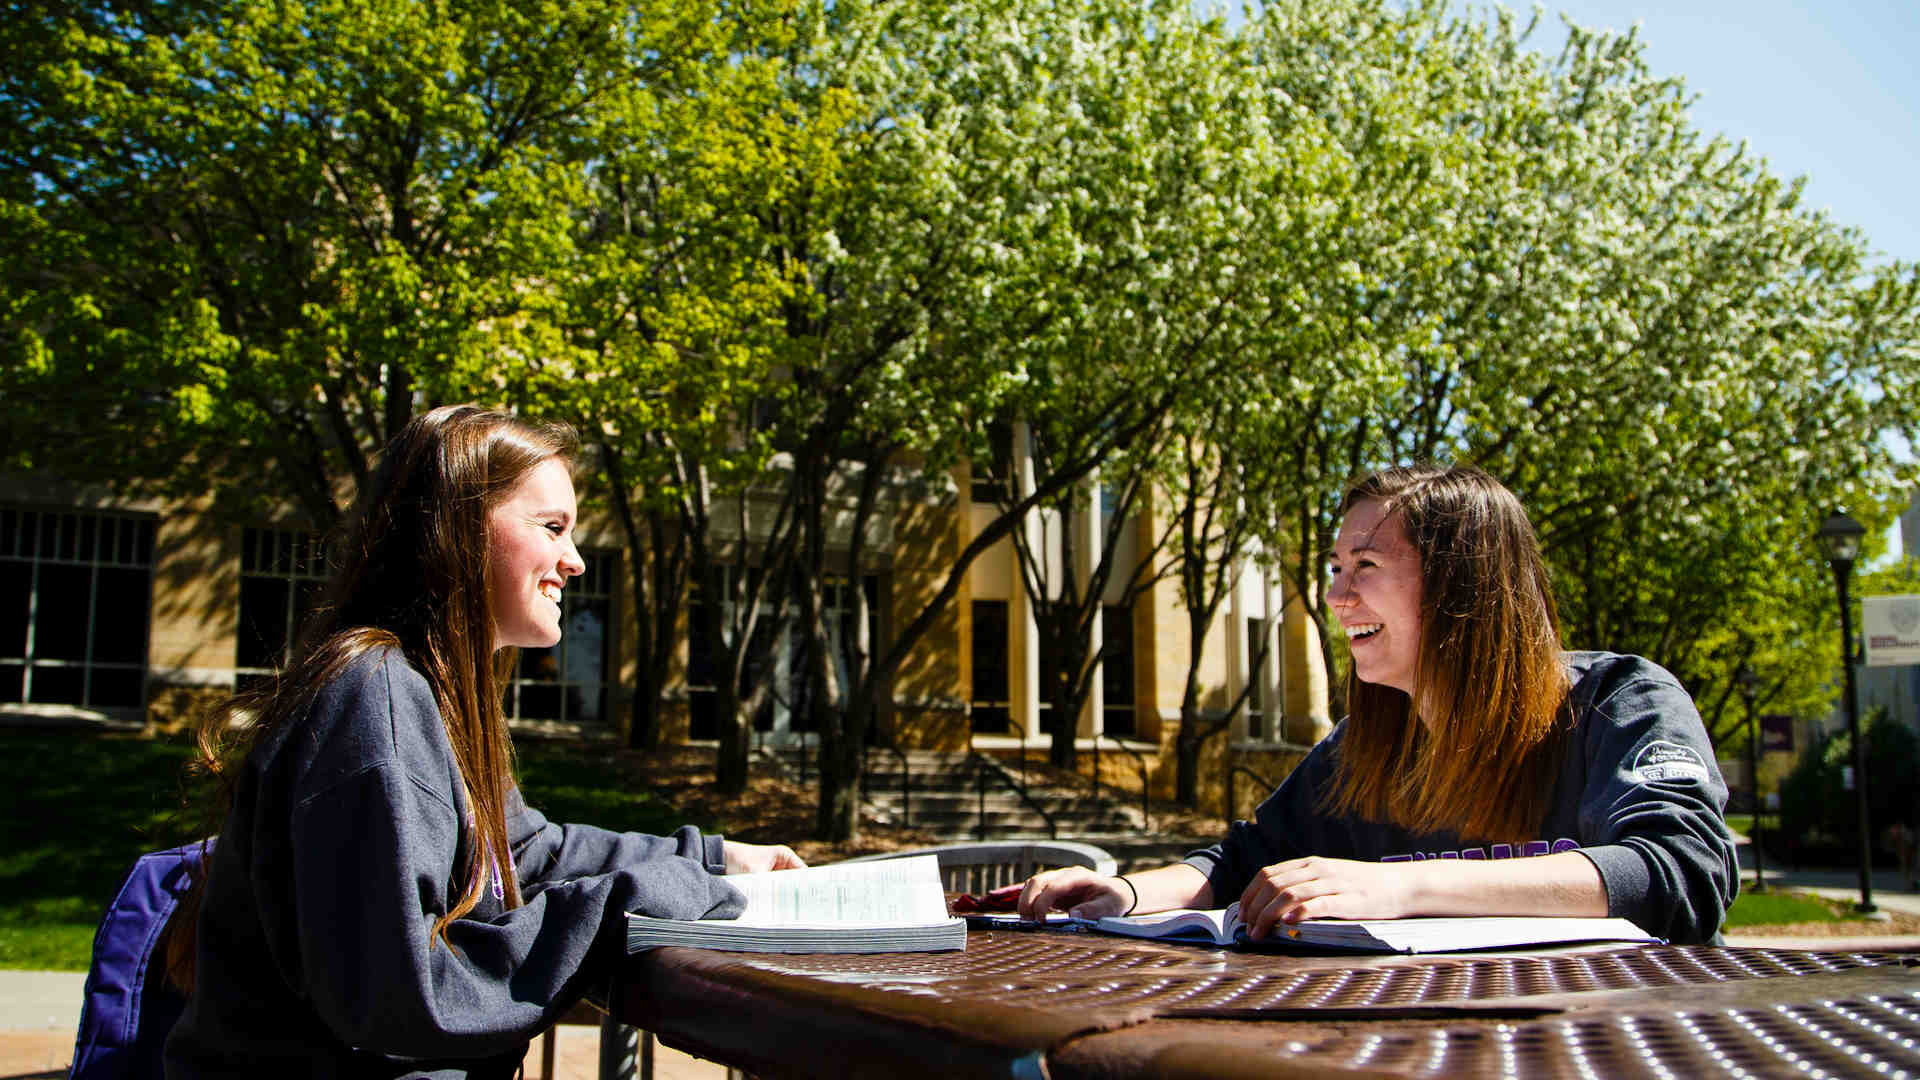 Two students sit and chat at a picnic table on a sunny day.